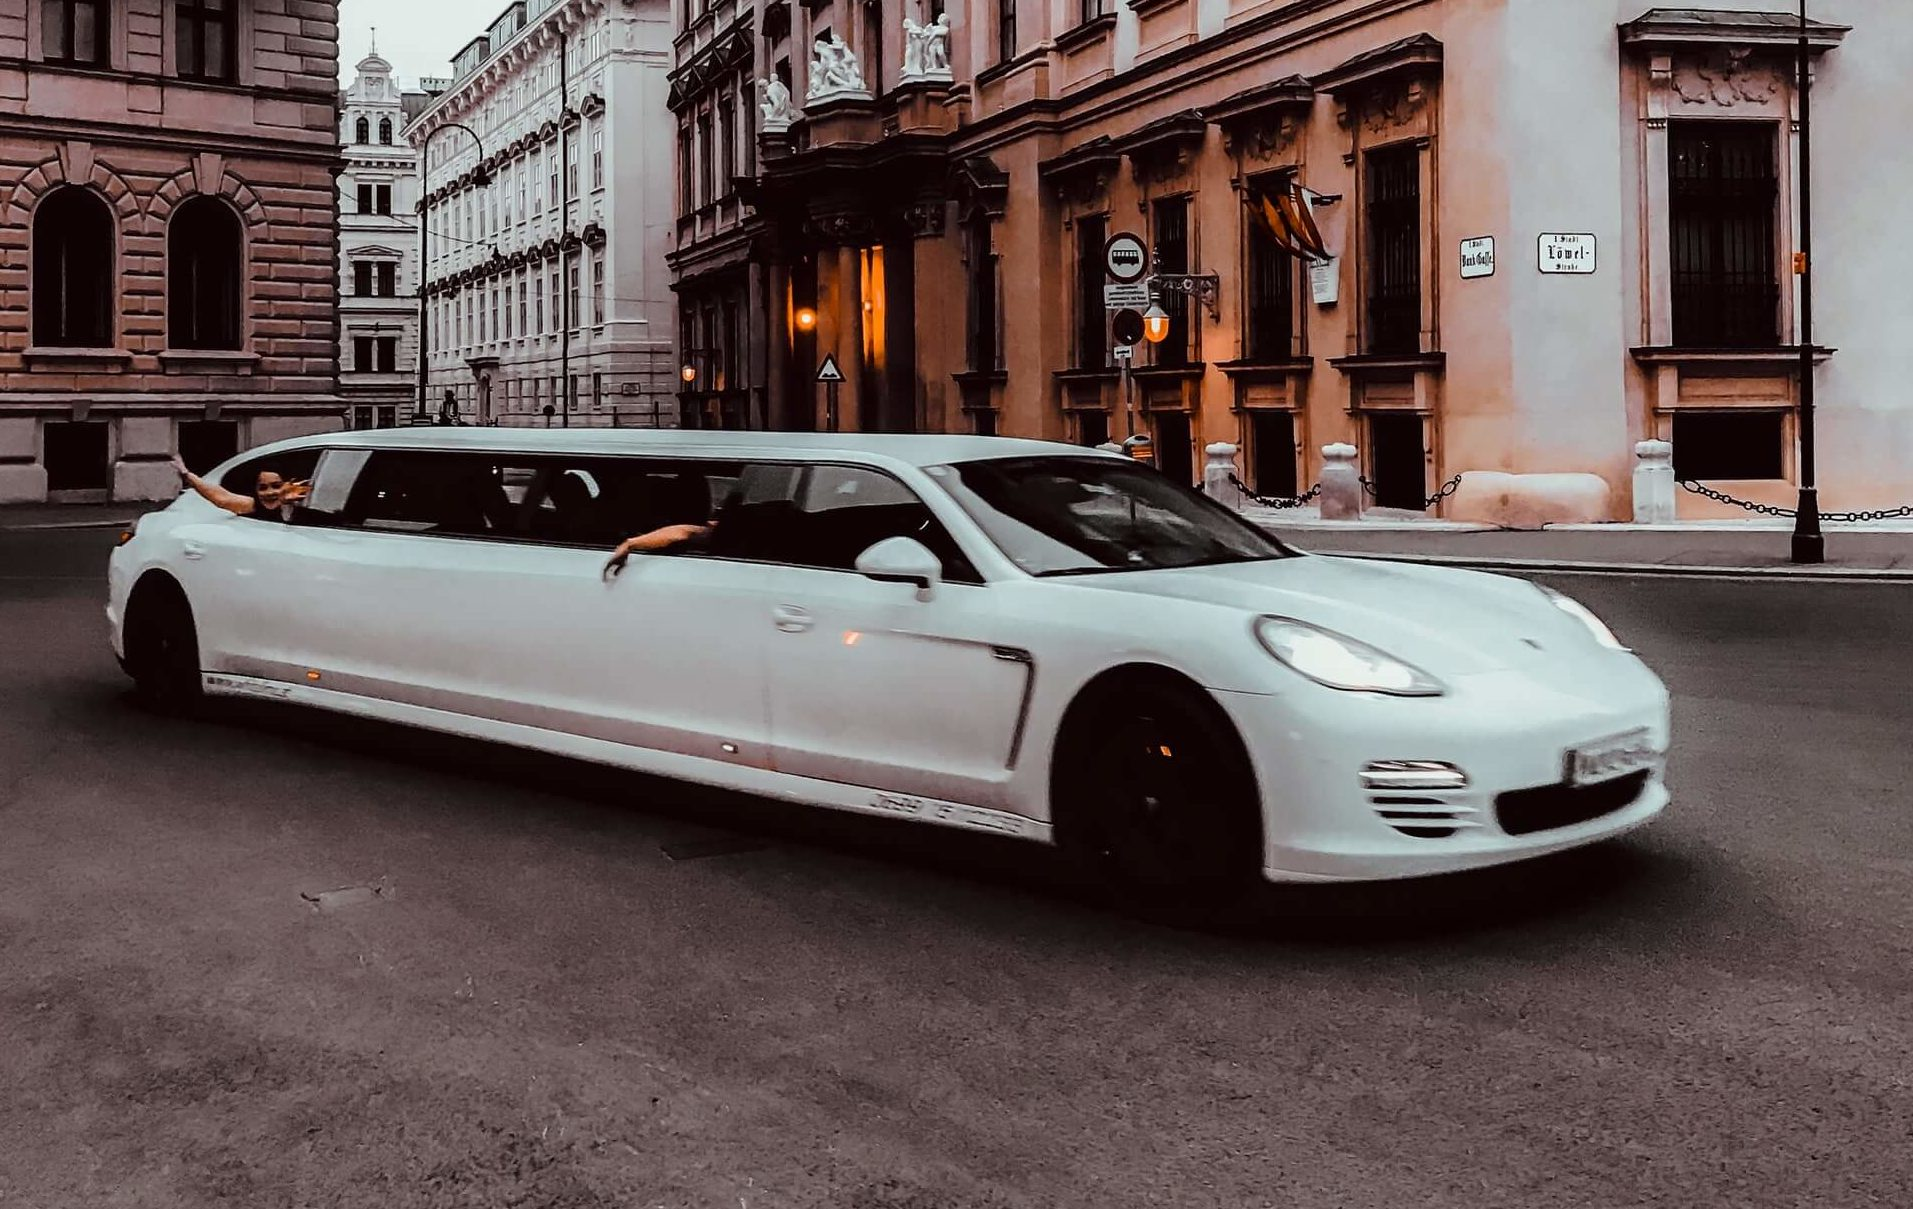 Rent a Limo Service for Your Next LSU, Saints or Pelicans Game